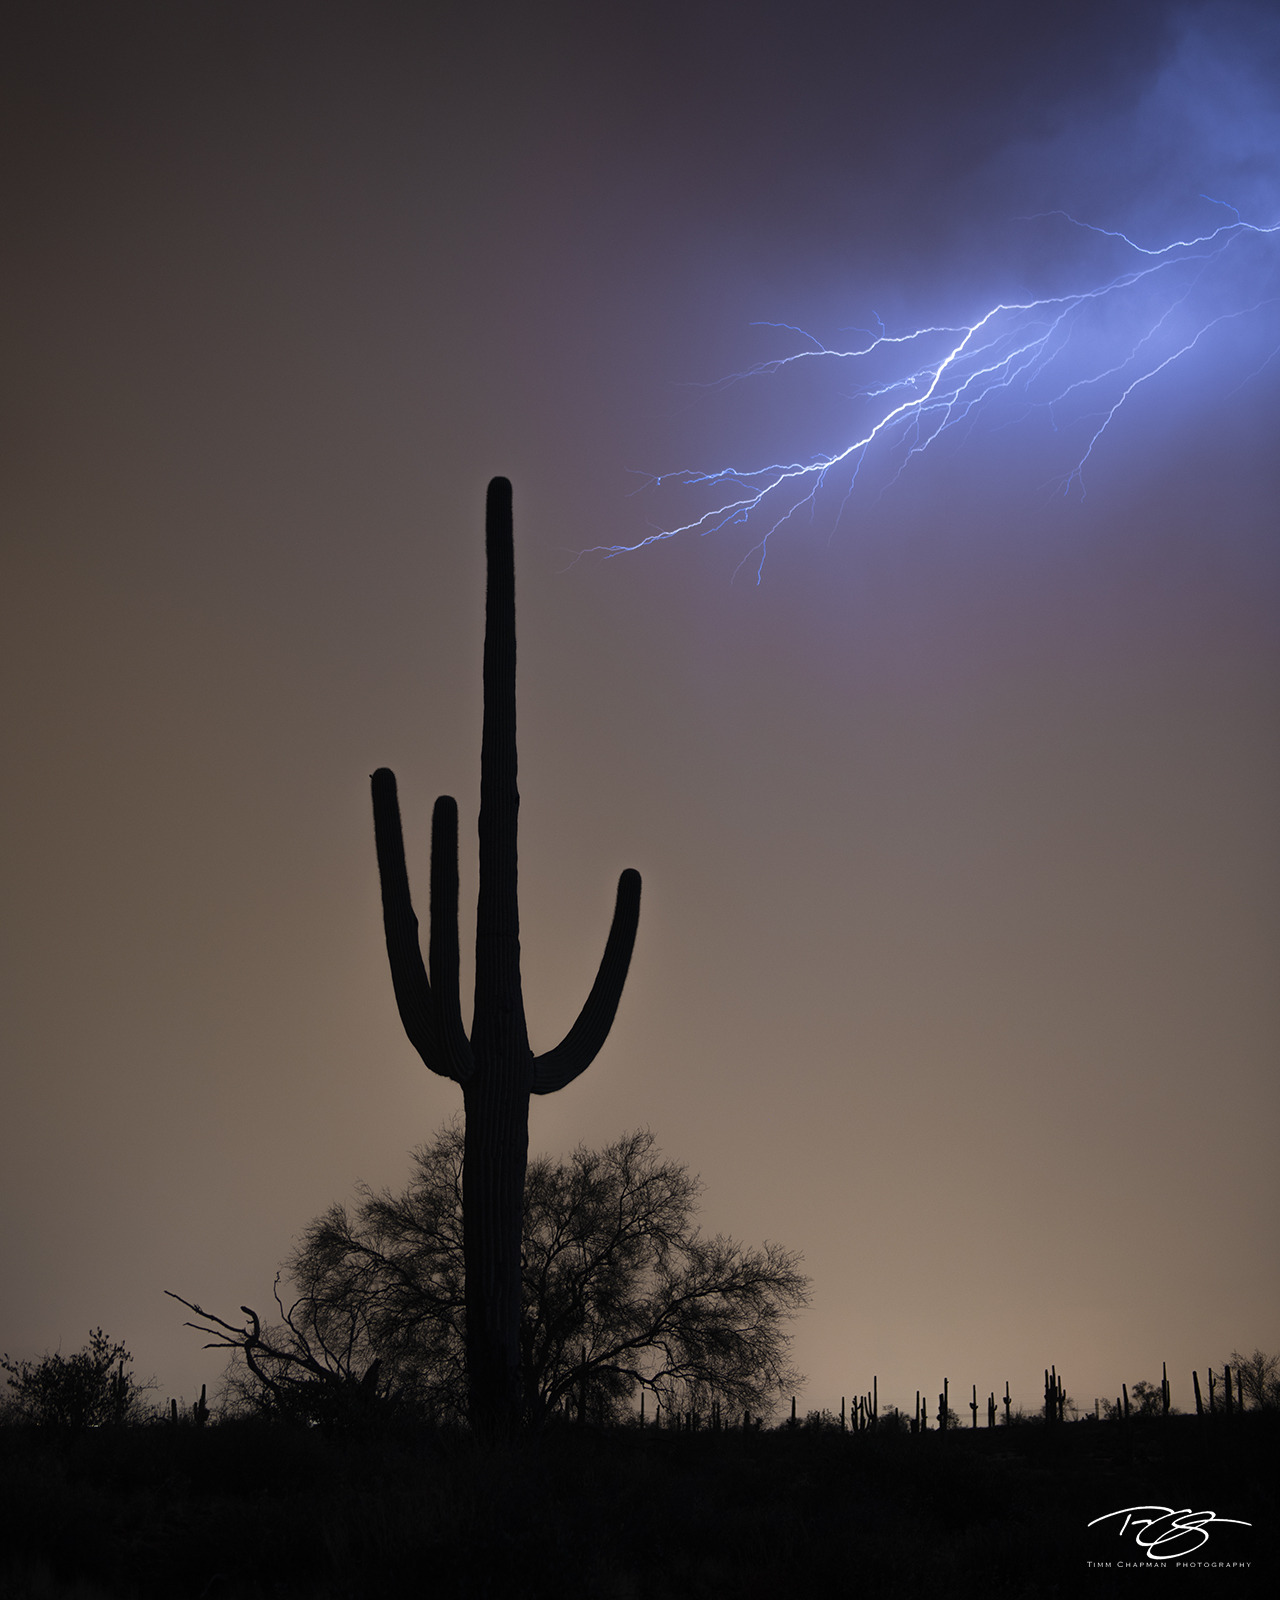 A strike of lightning reaches toward a giant saguaro cacti during a summer monsoon